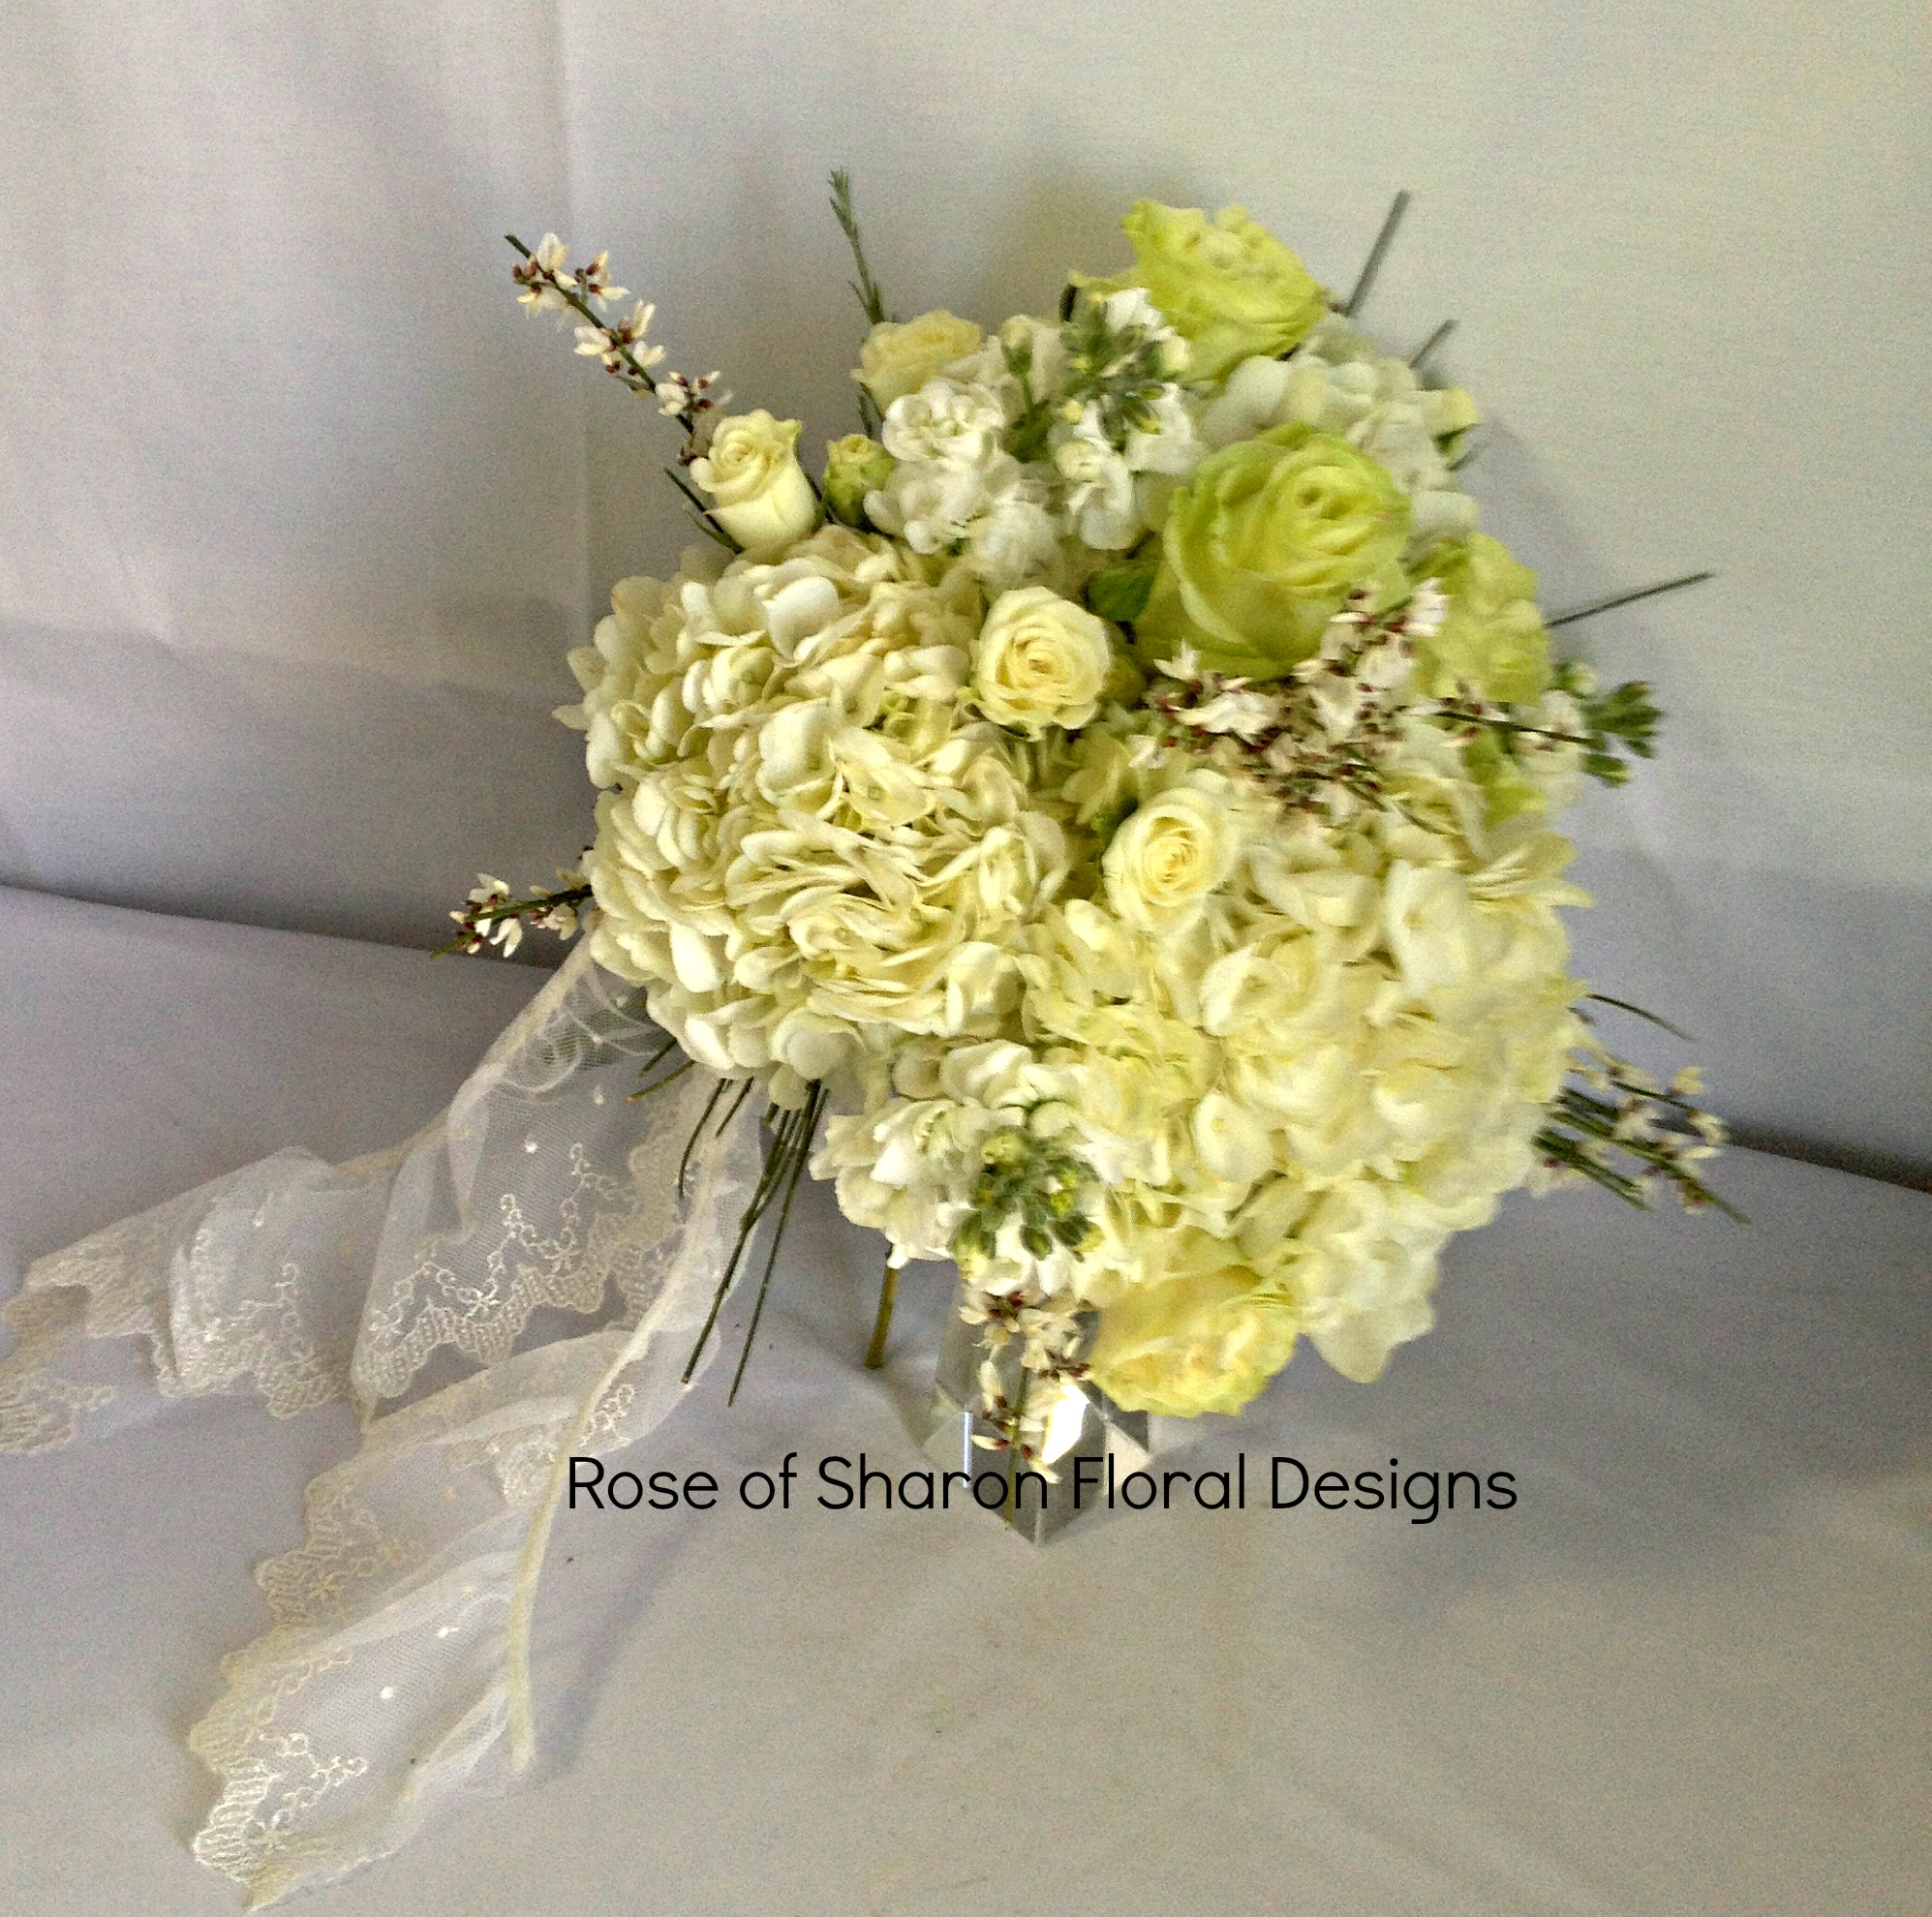 Hand-Tied Bouquet. White Hydrangeas, Roses & Stock. Rose of Sharon Floral Designs